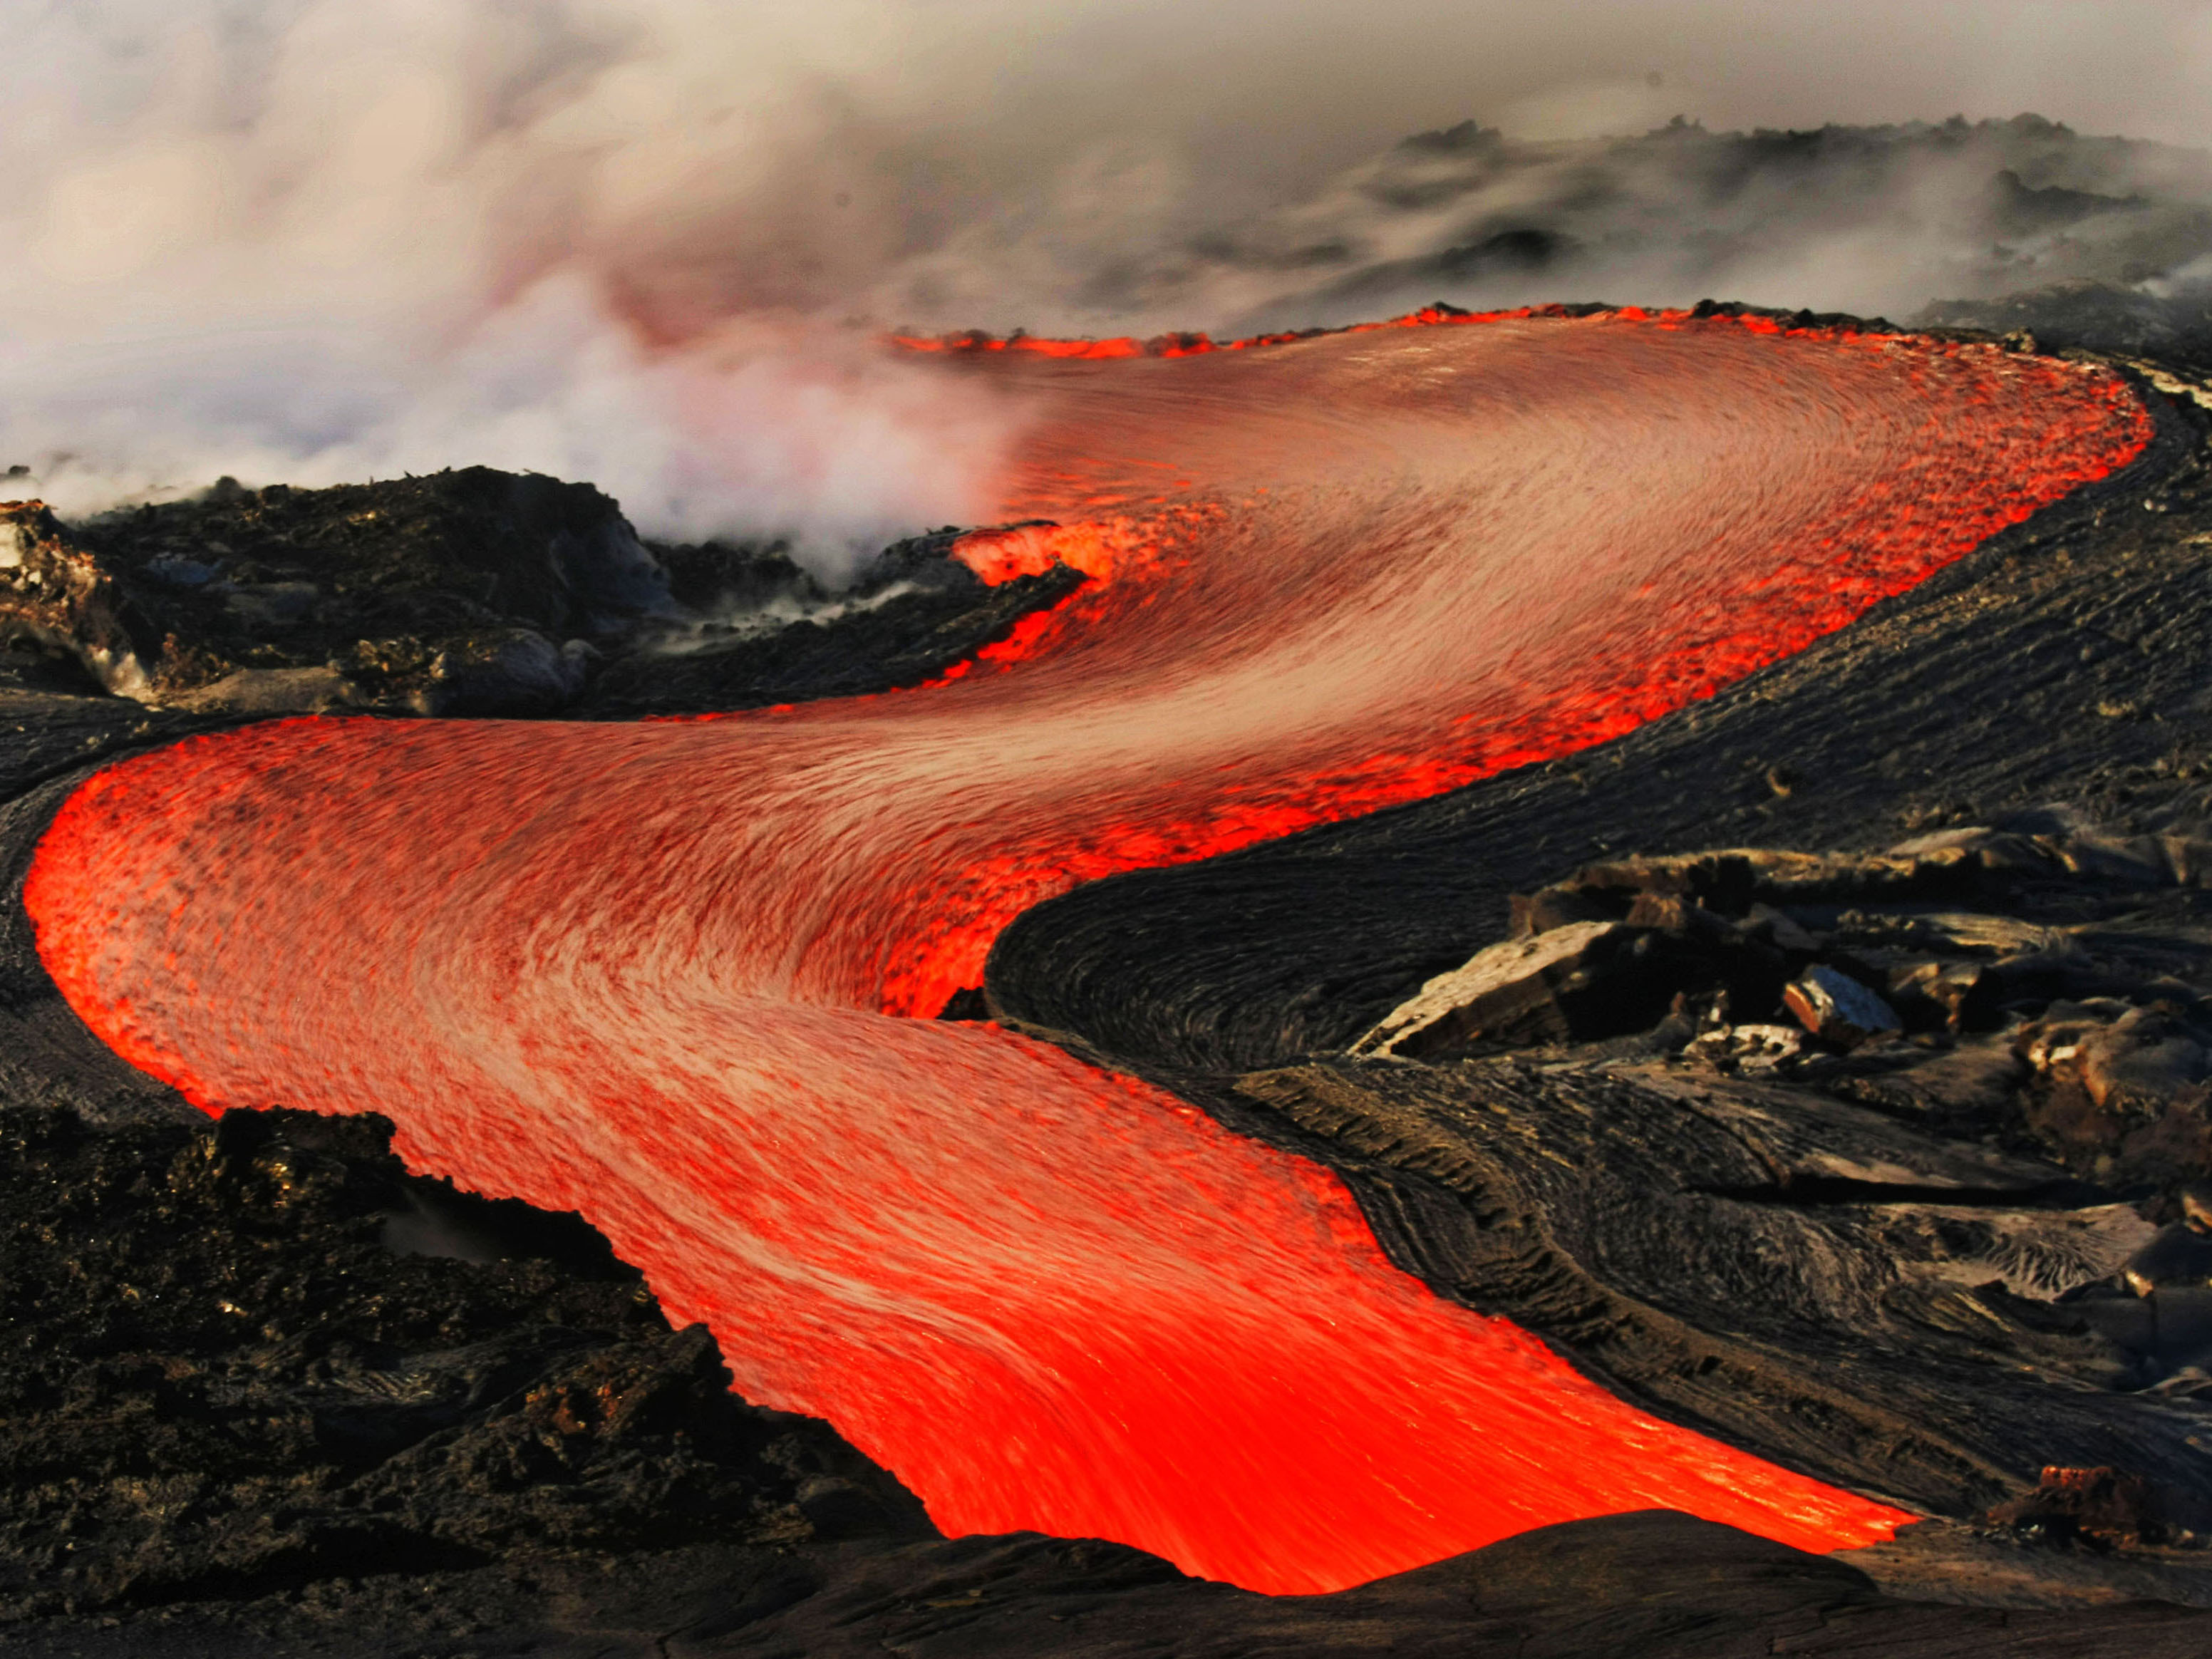 Dramatic lava flow in Hawaii - Photo 1 - Pictures - CBS News